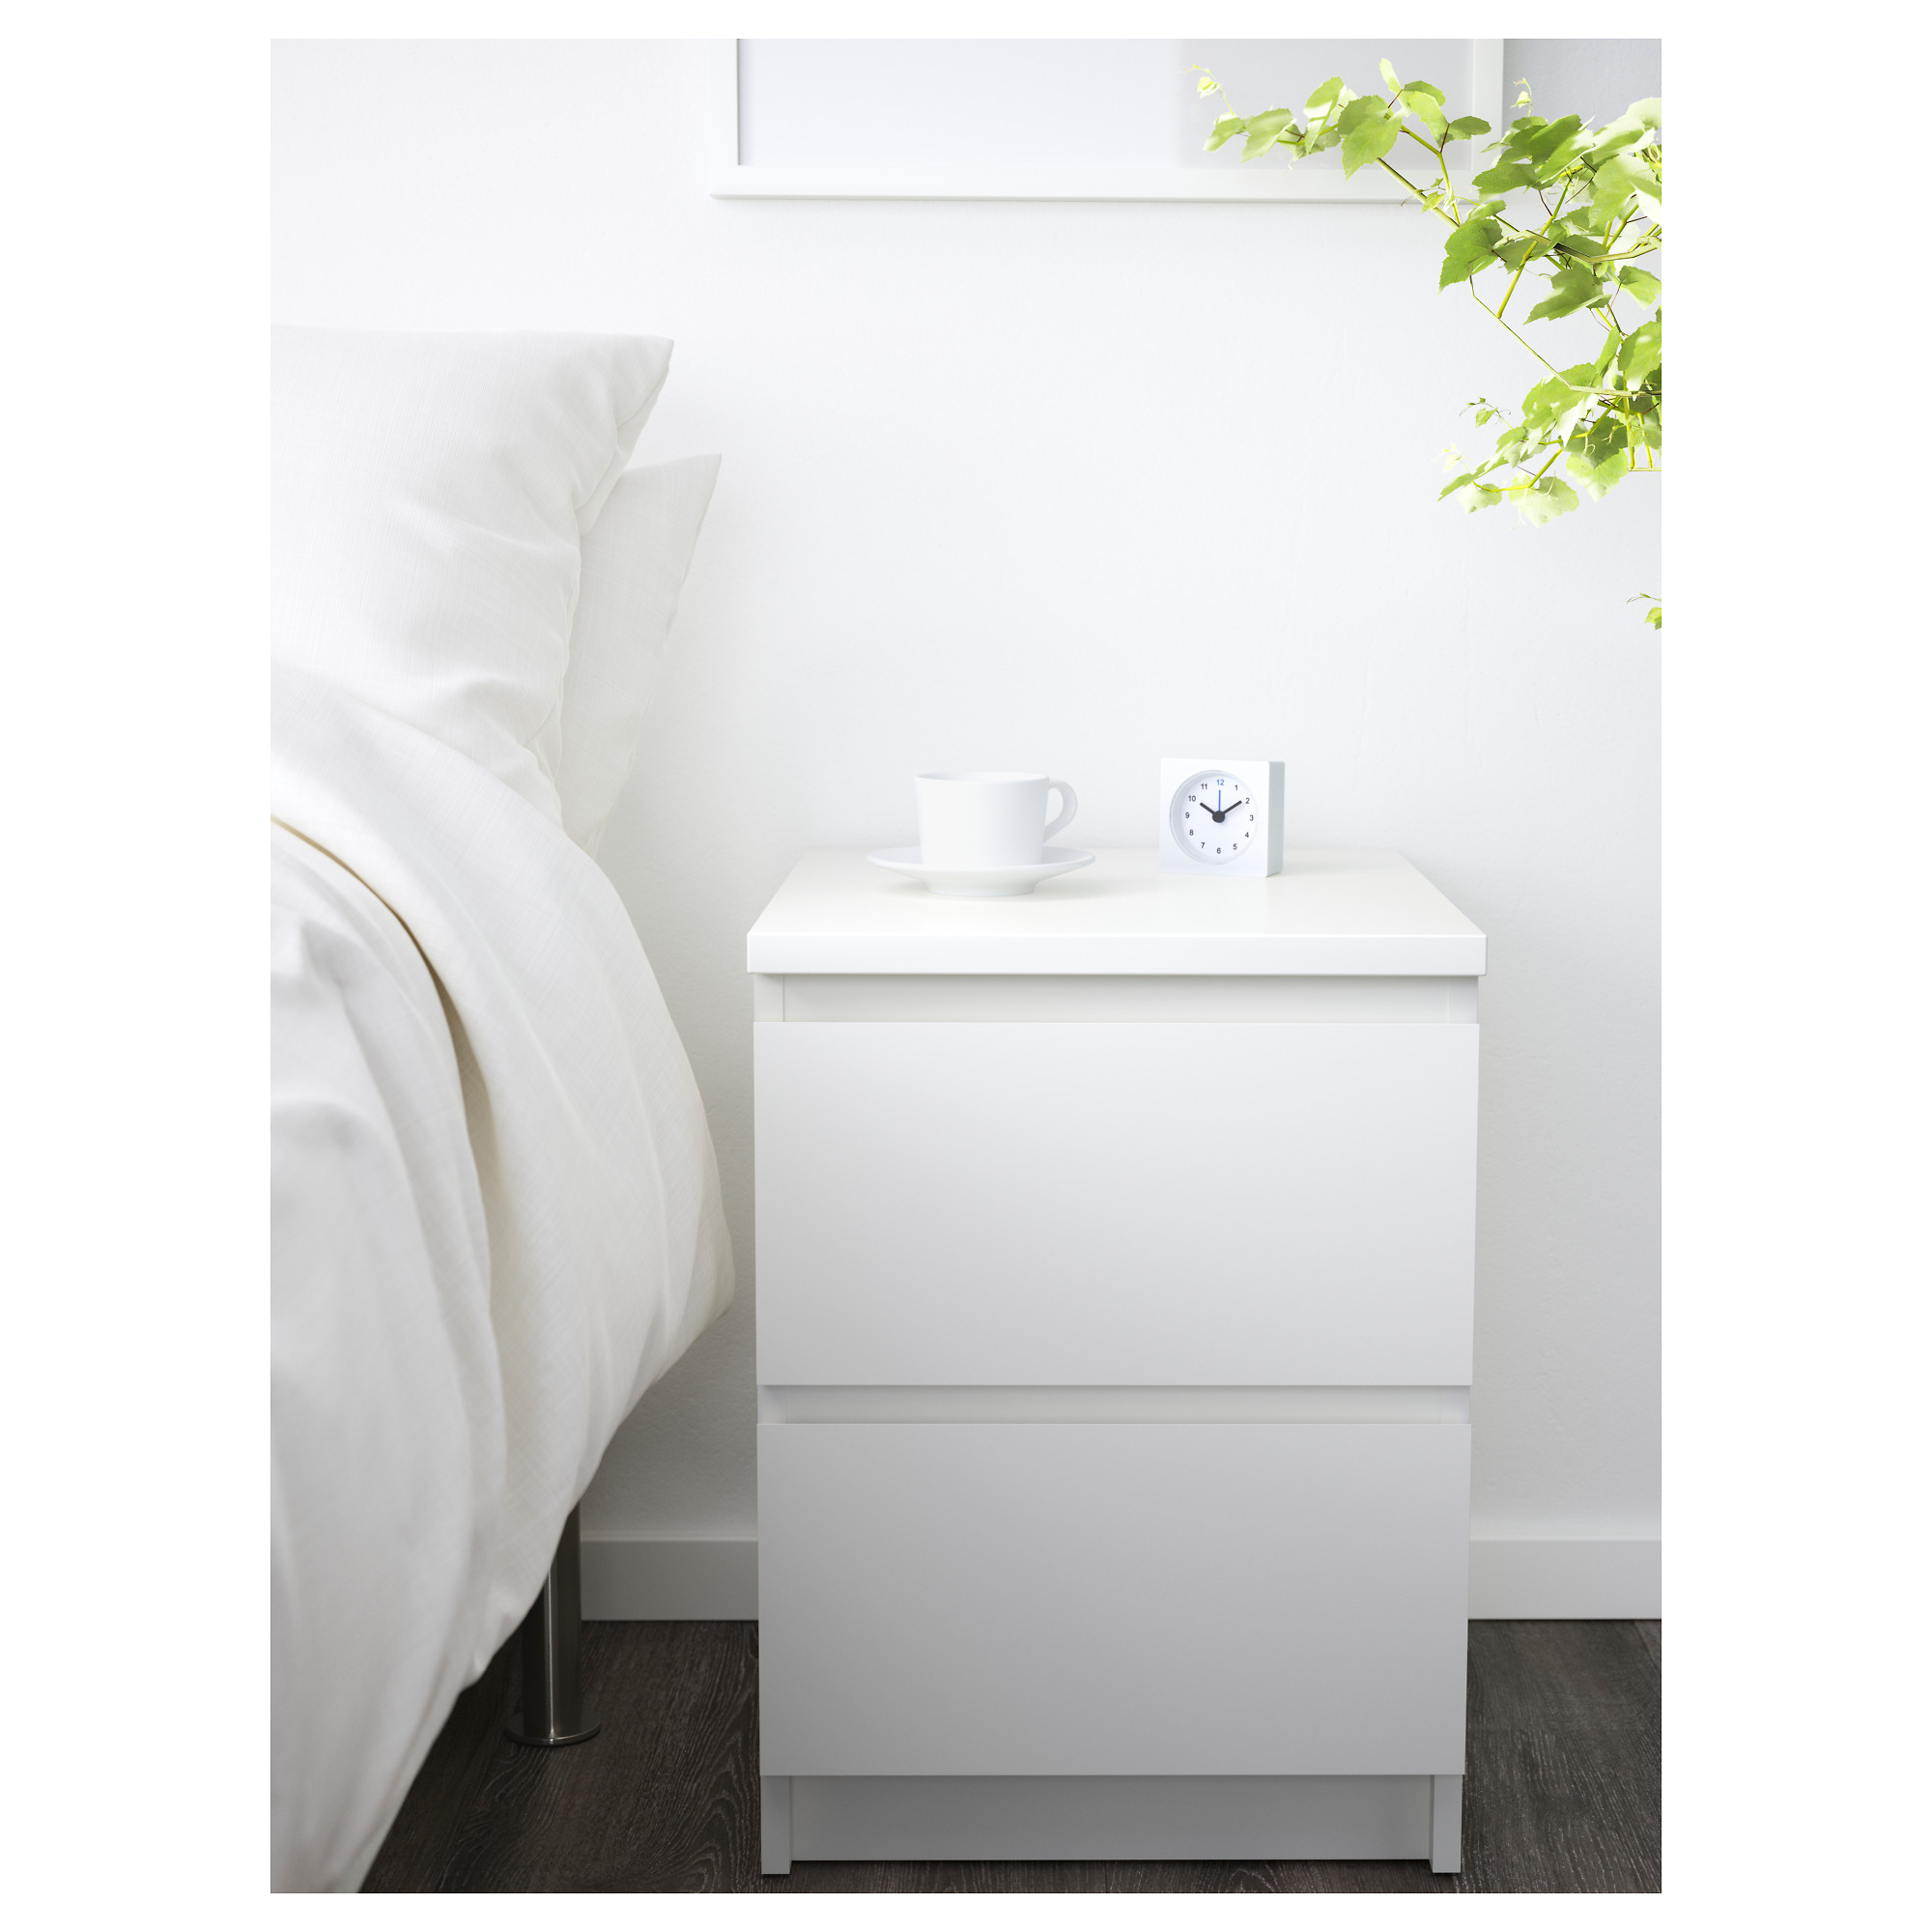 bedroom chest ikea for home intended colored innovative malm white drawer with mobilemonitors elegant of s amazing hopen dresser